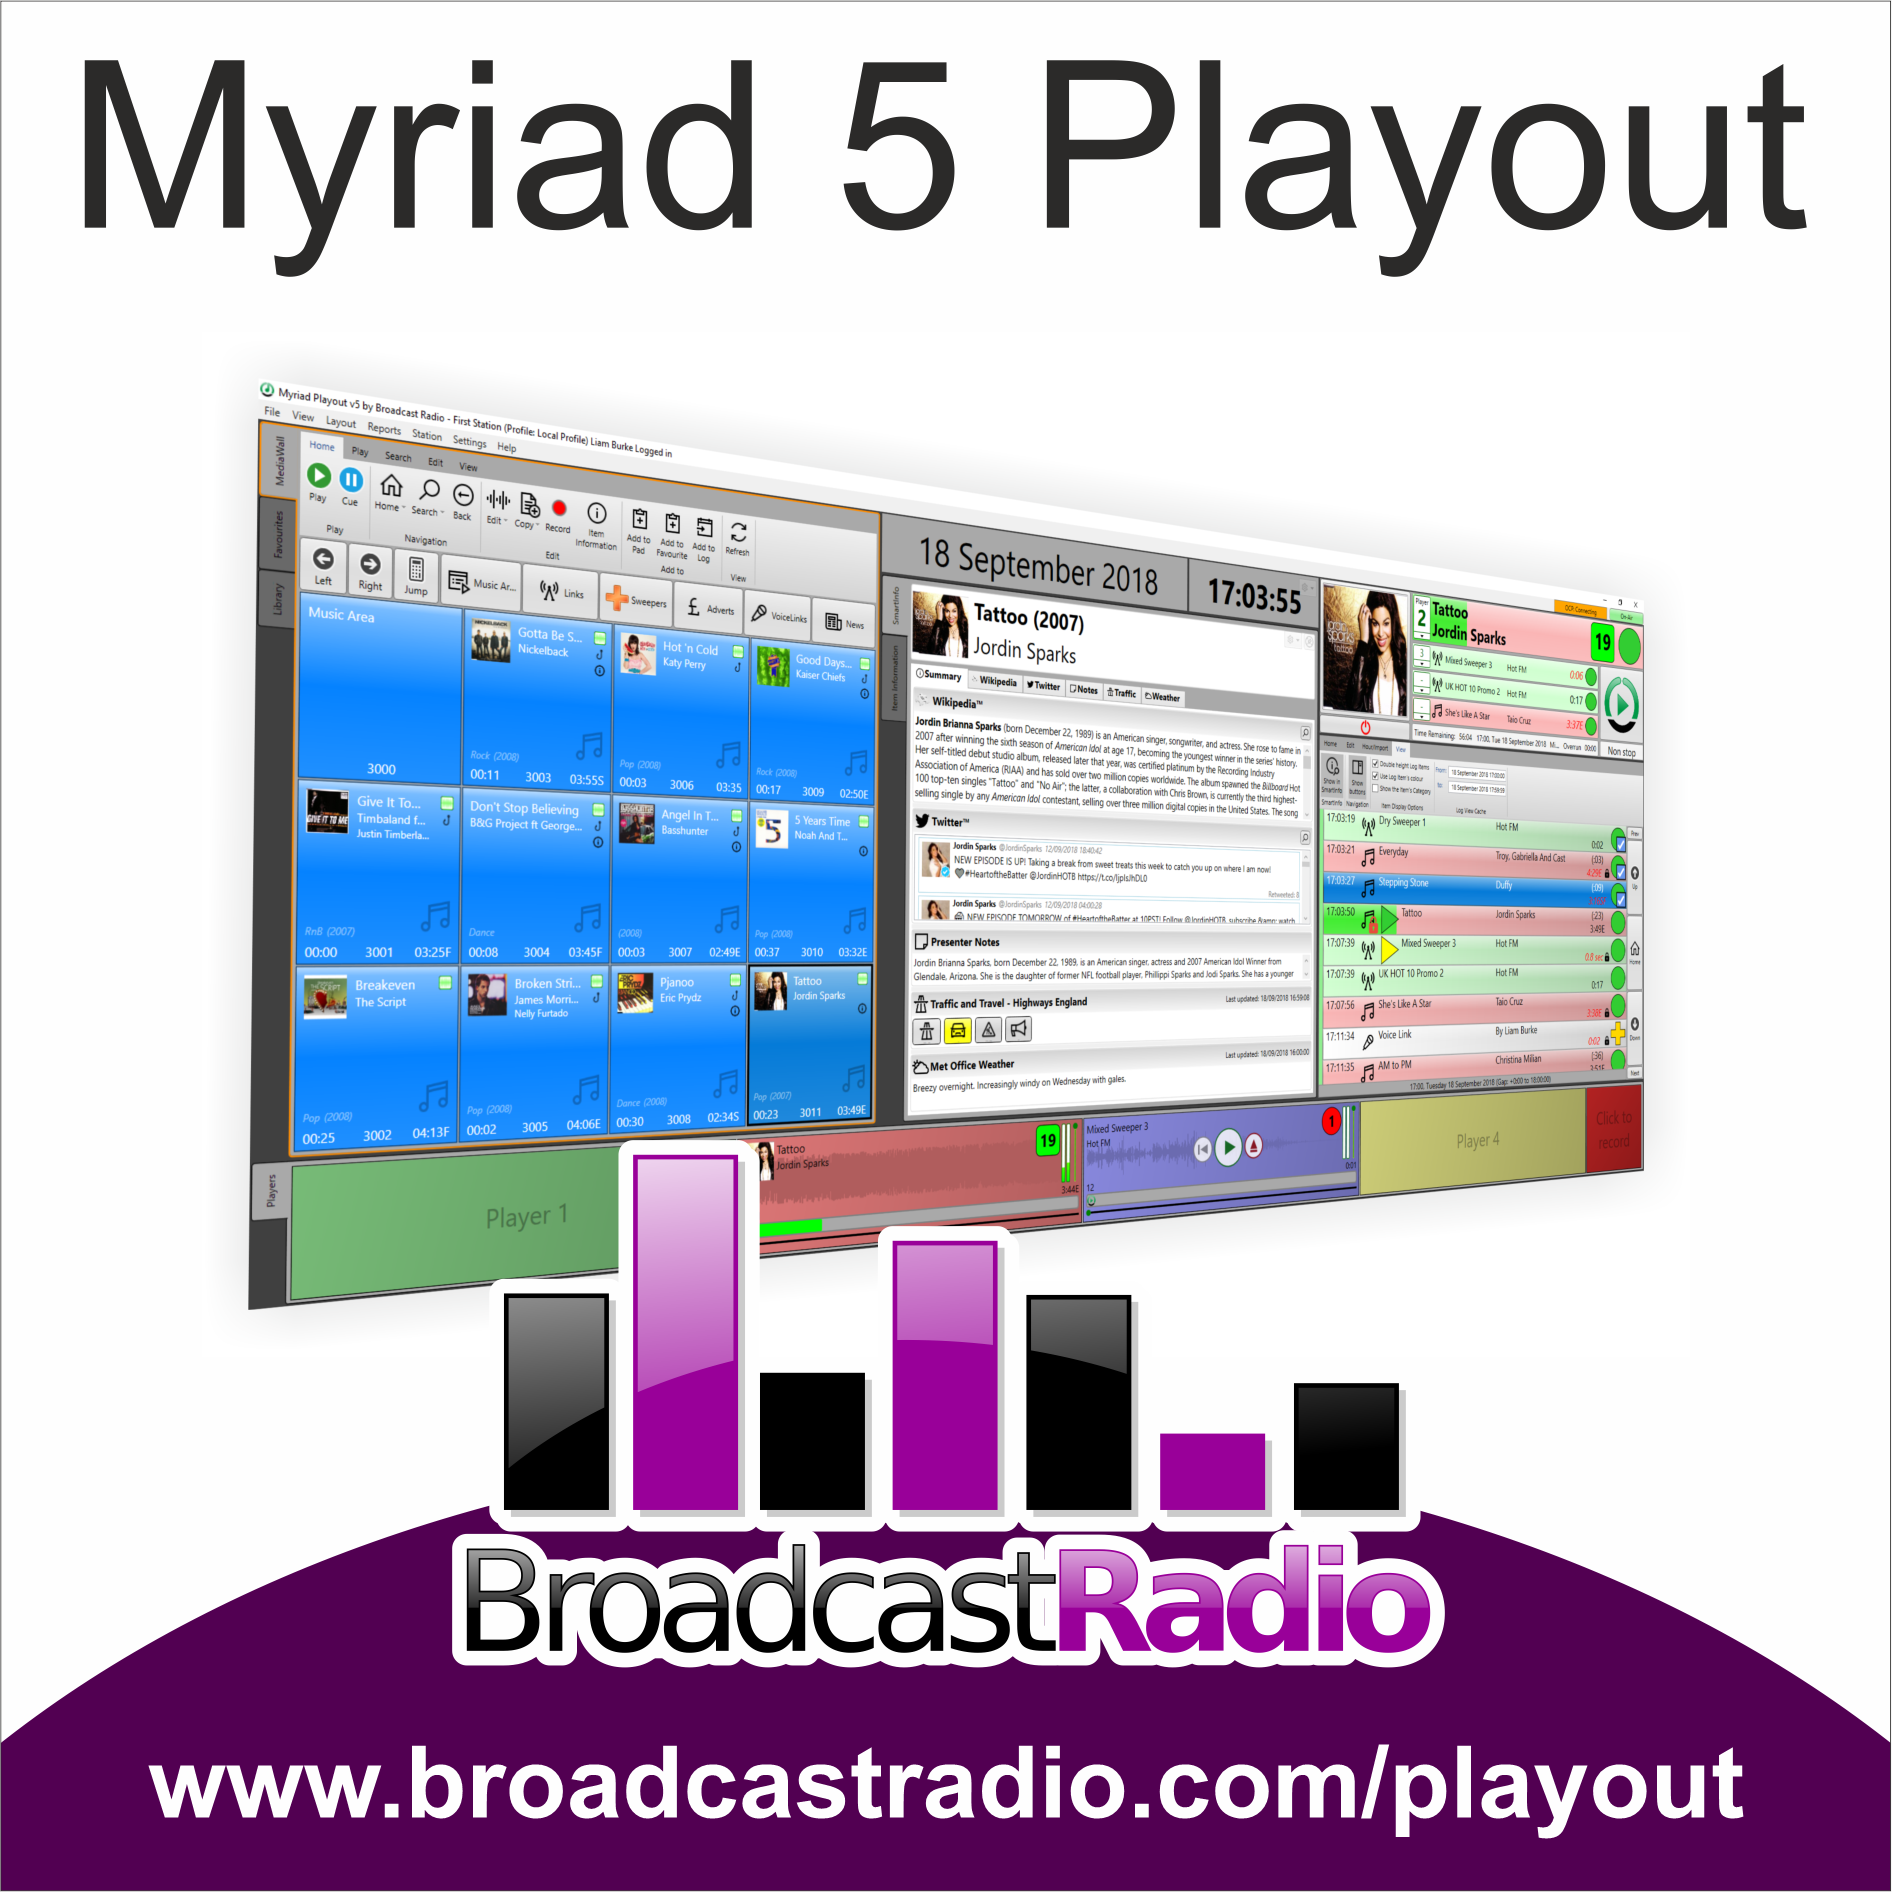 BR PLAYOUT SQUARE